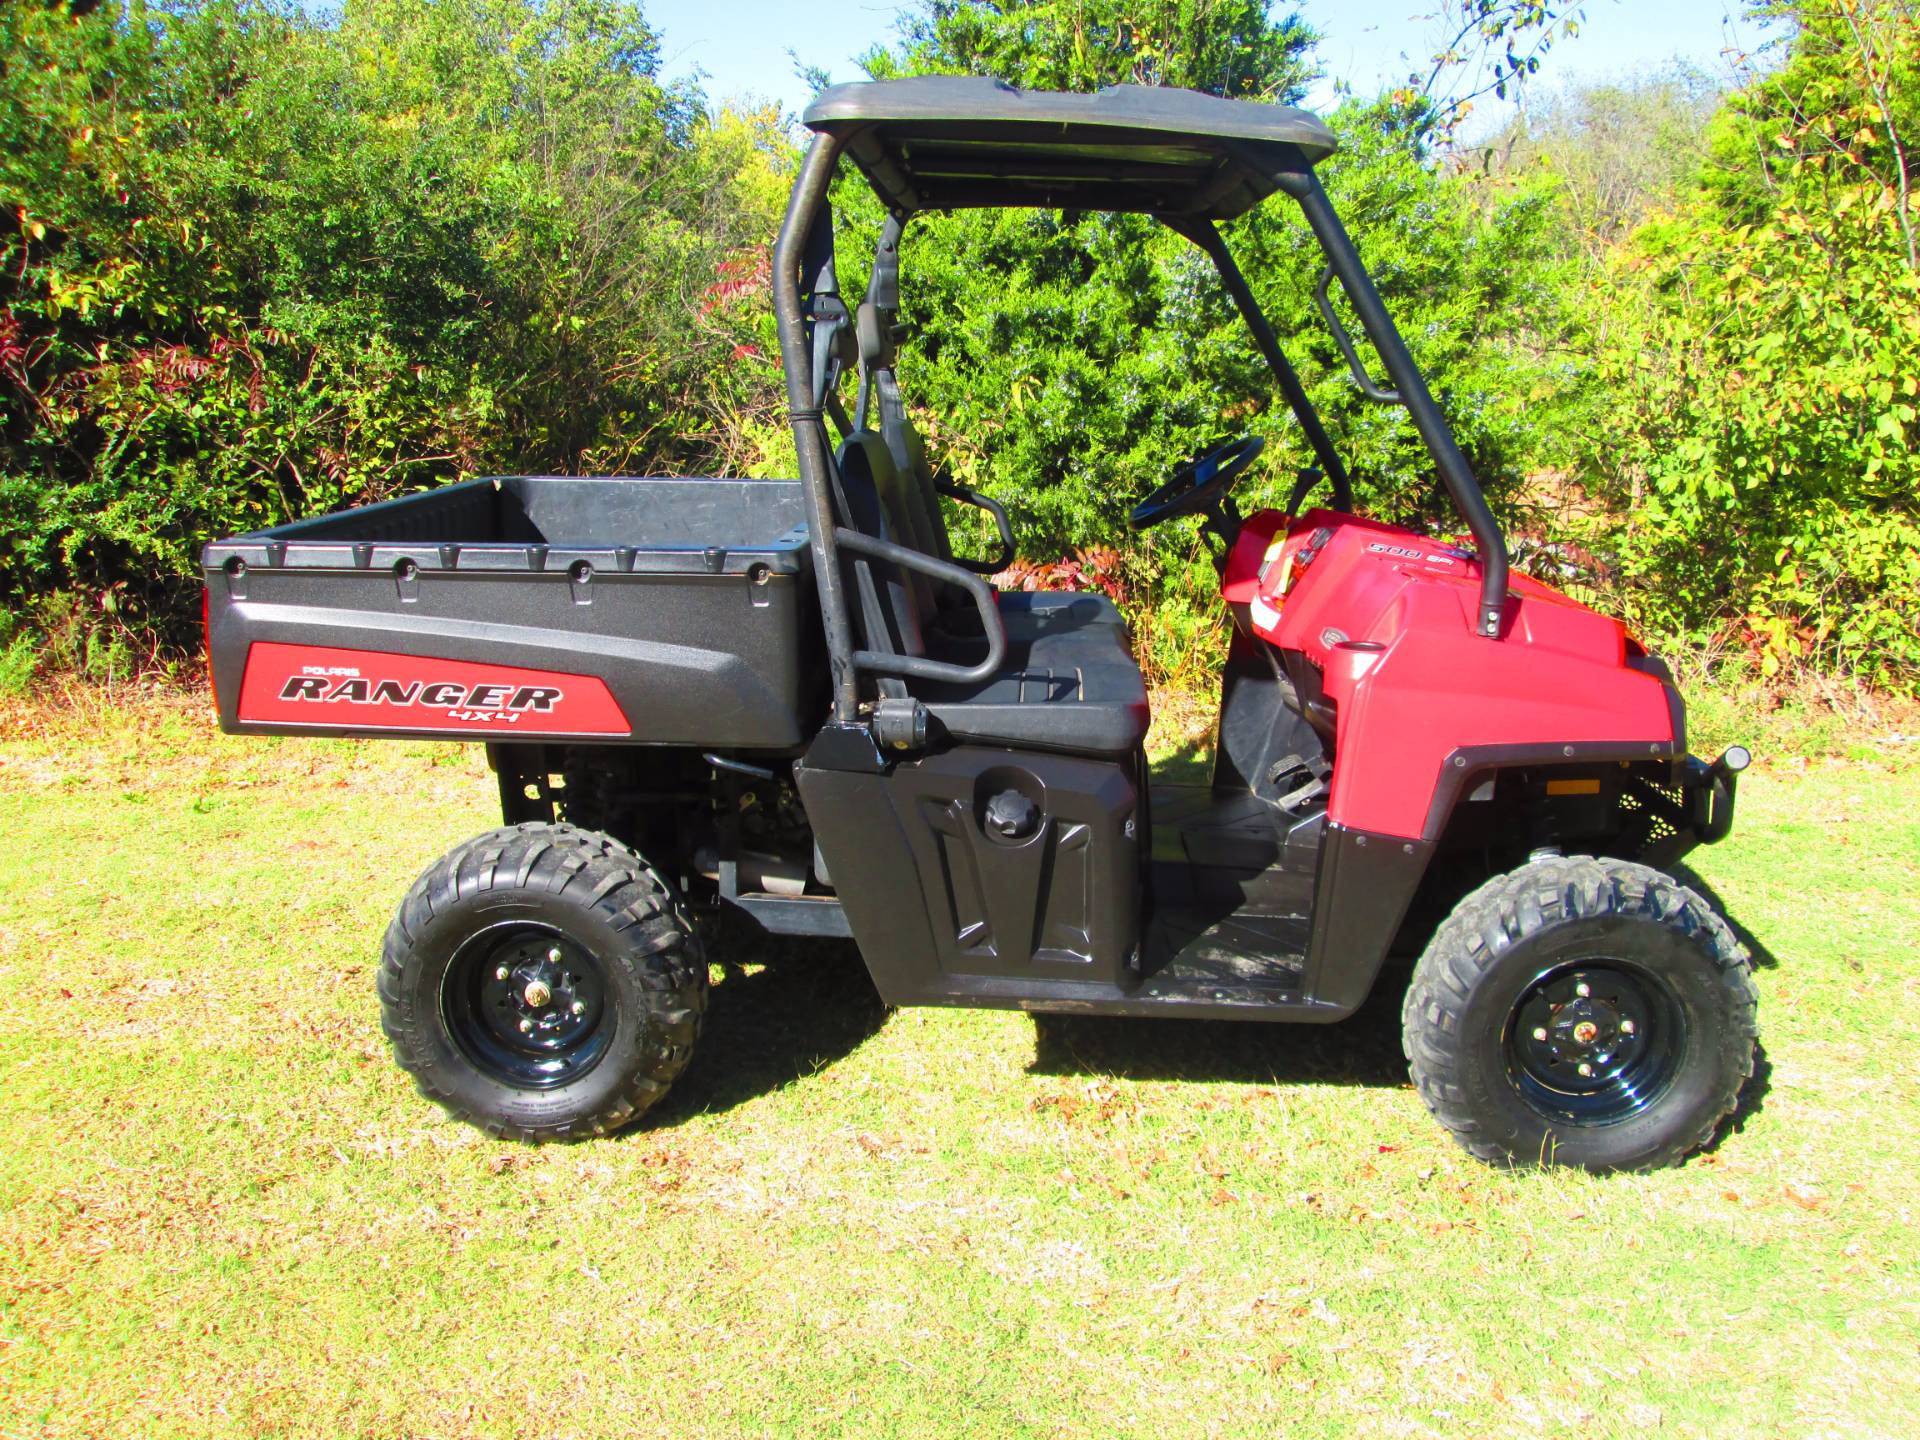 2010 Polaris Ranger® 500 EFI H.O. in Jones, Oklahoma